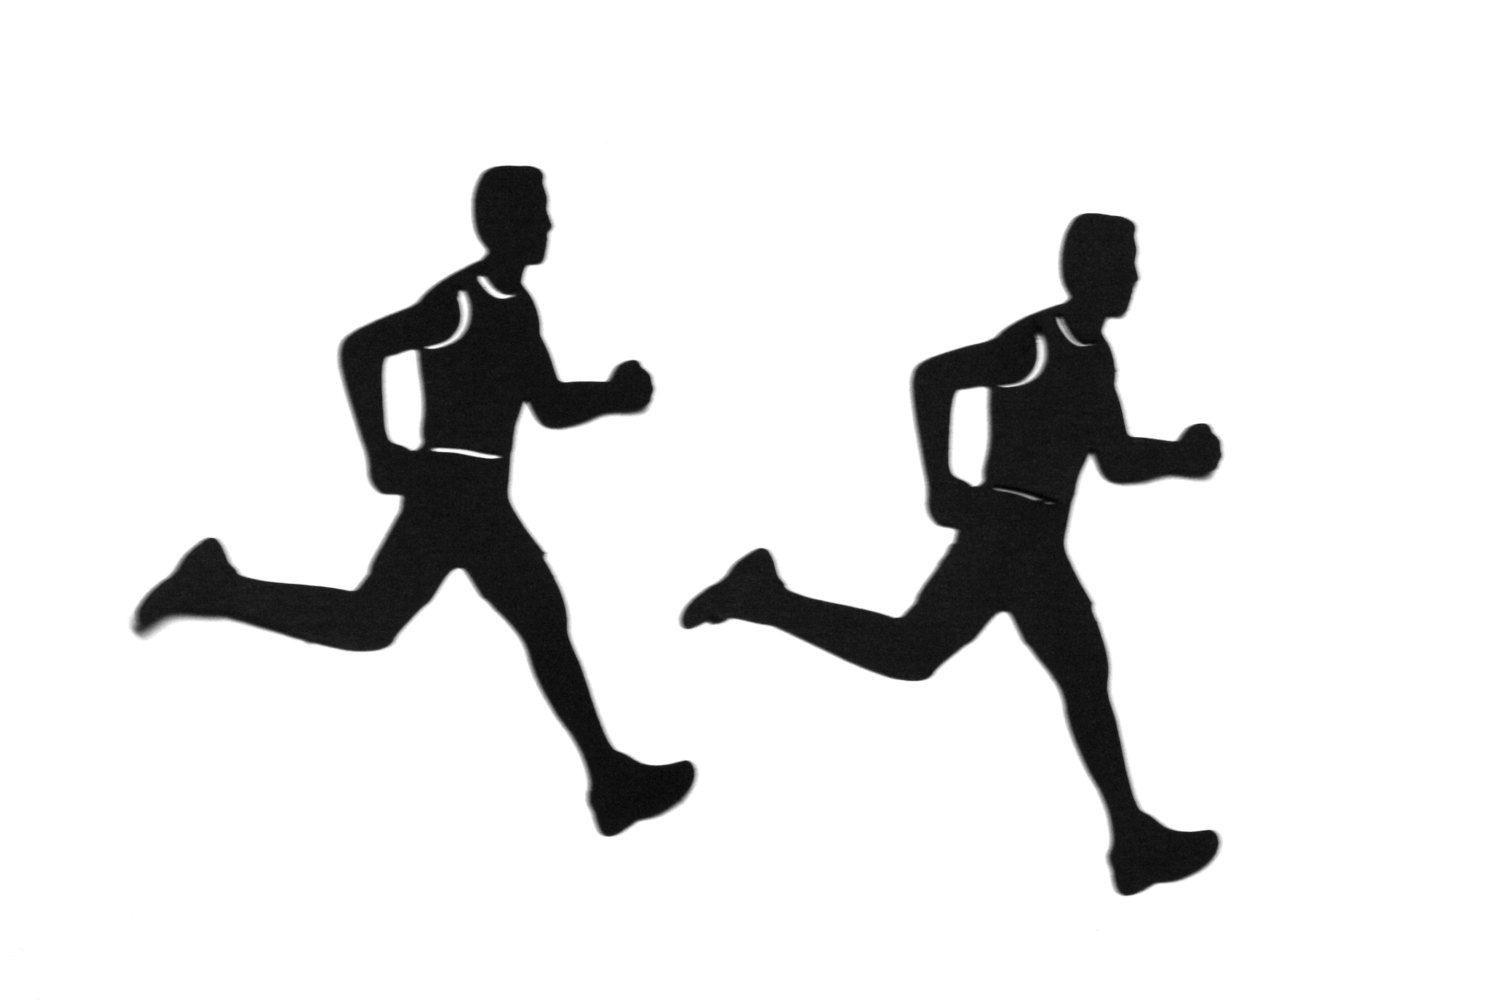 Silhouette of runner clipart clipart royalty free download Free Runner Silhouette, Download Free Clip Art, Free Clip ... clipart royalty free download